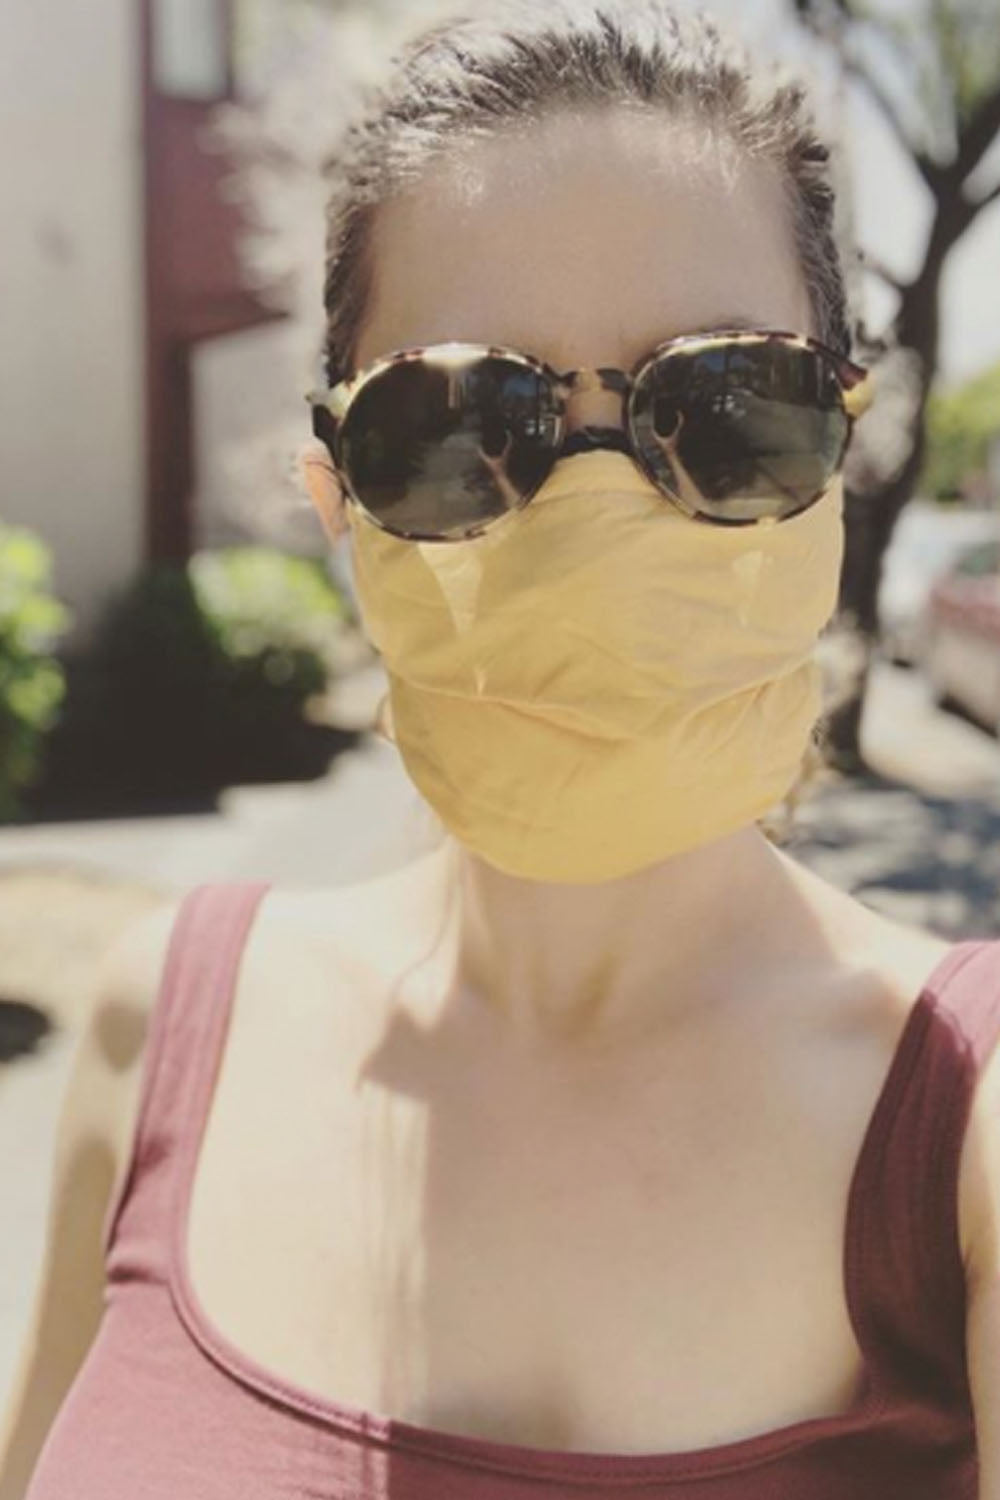 Woman in sunglasses and tank top wears light orange fabric face mask.